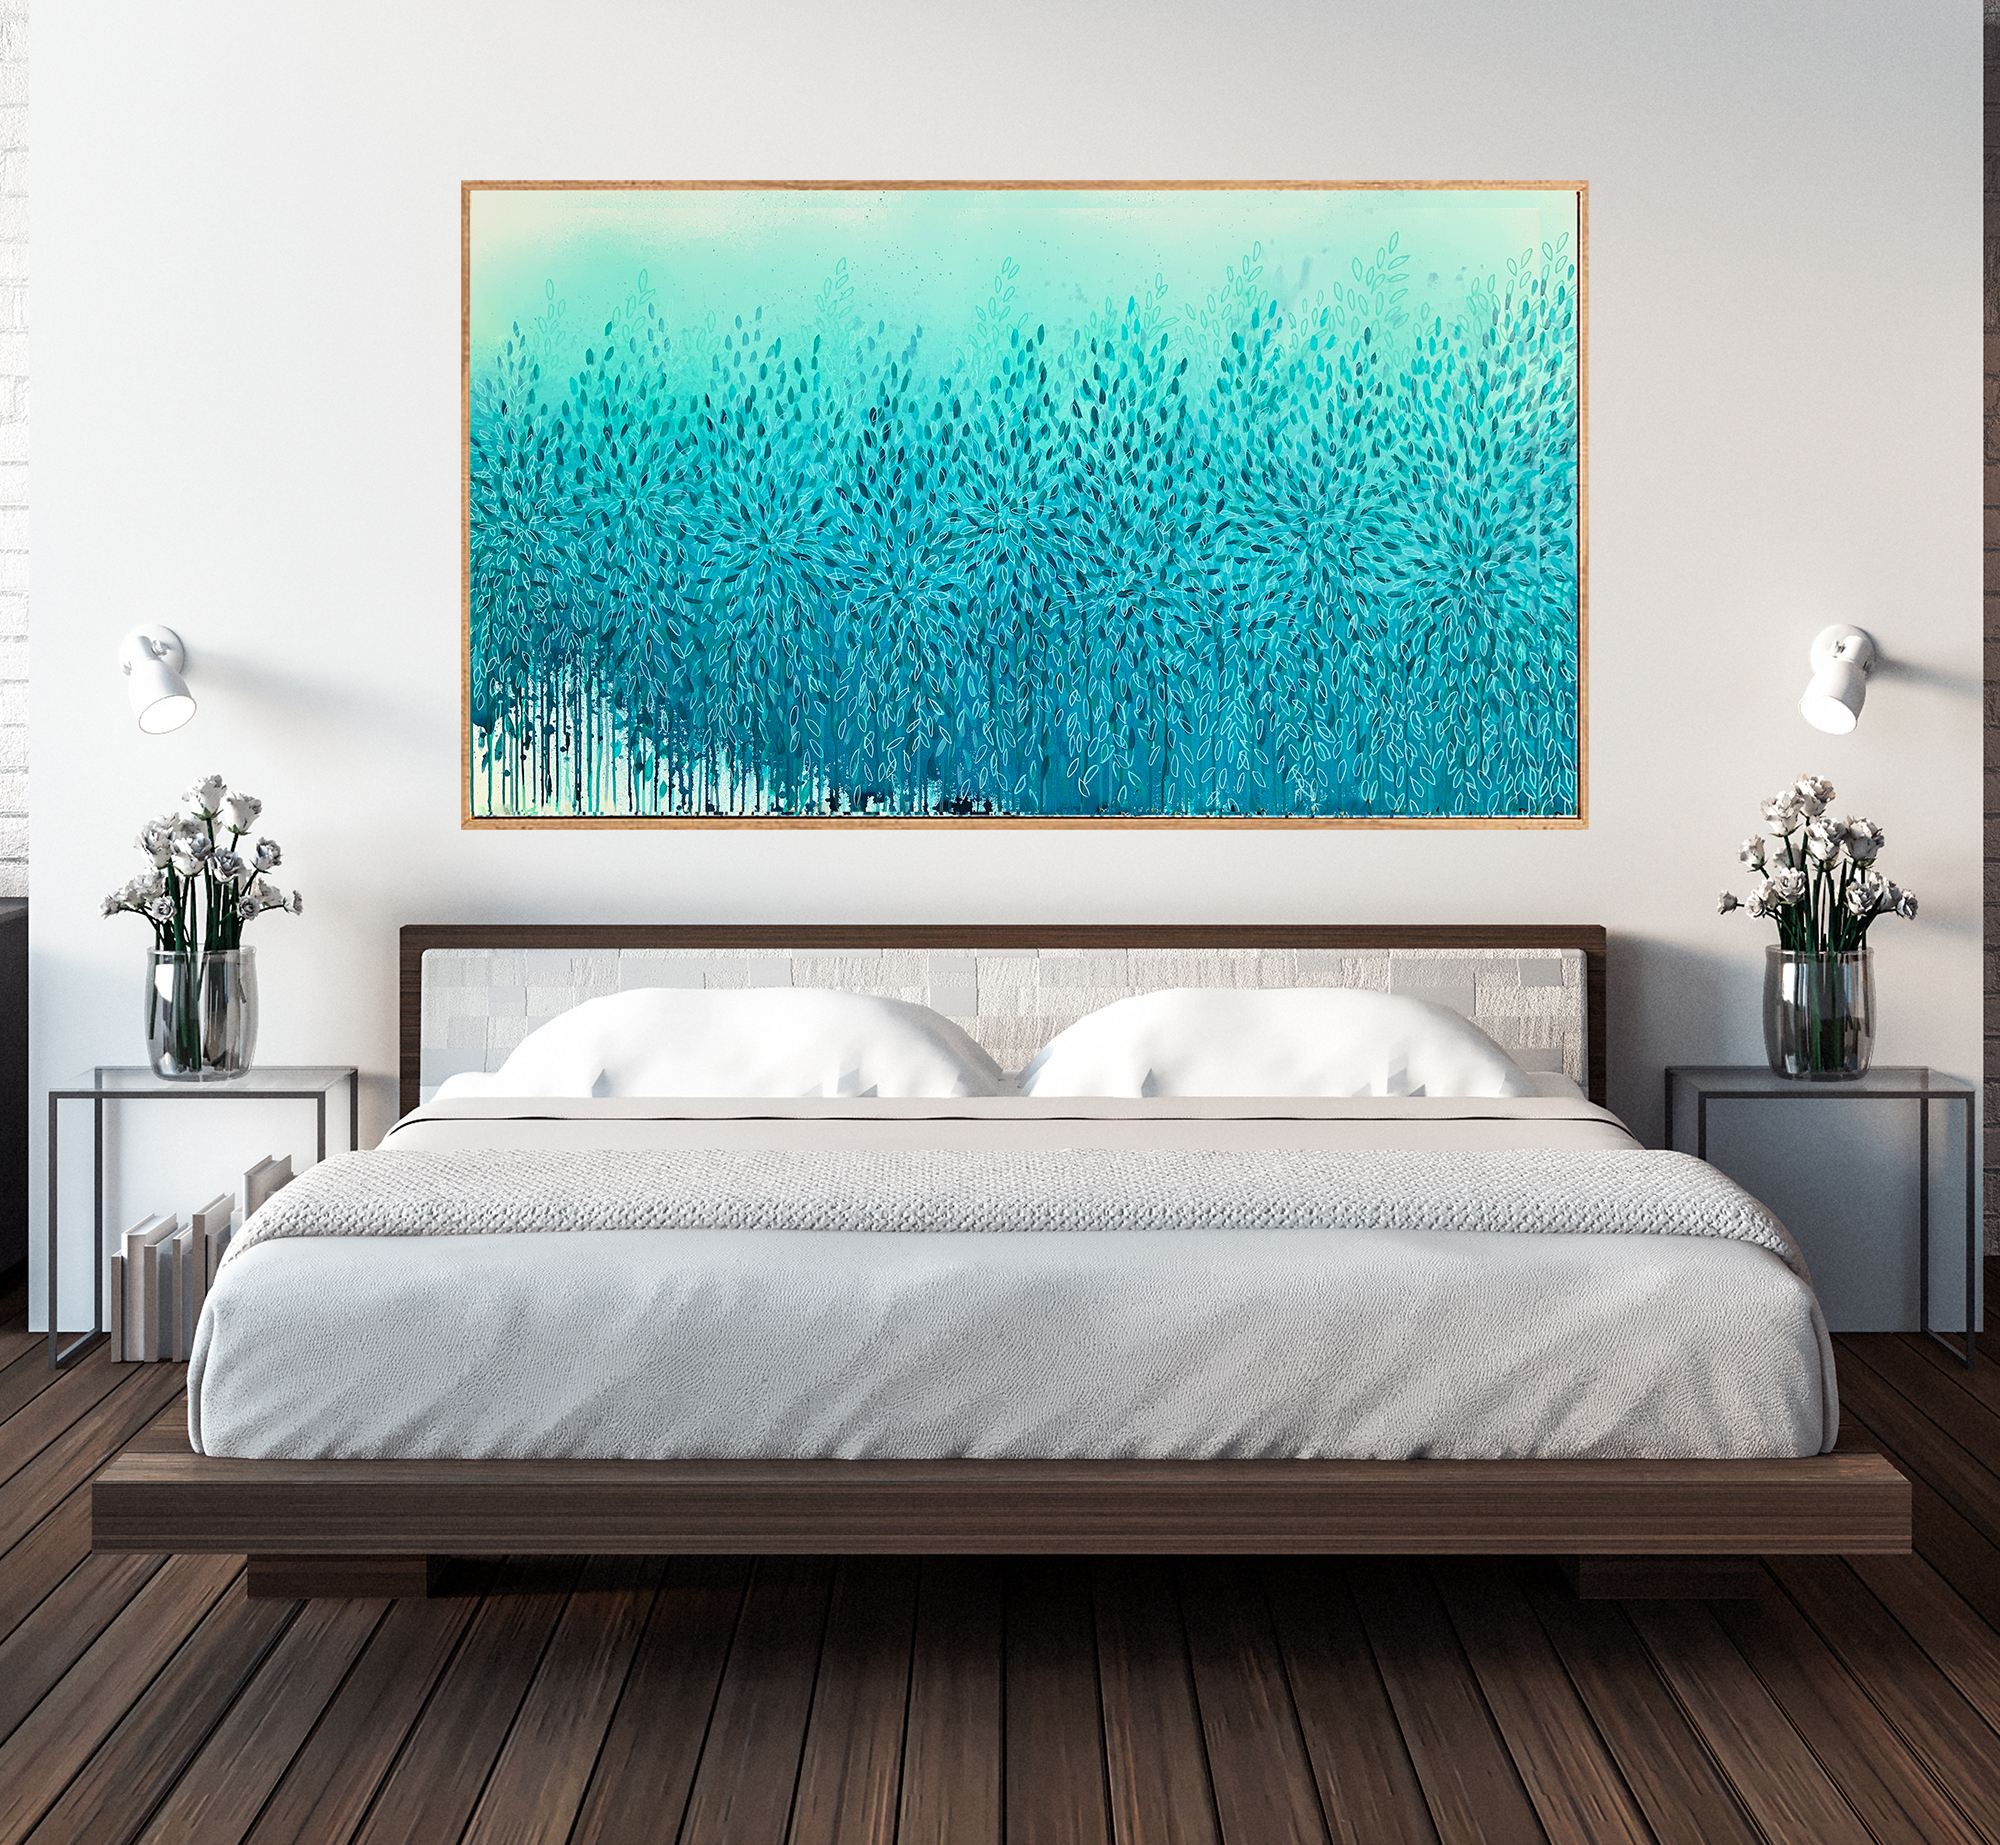 1a.bedroom Interior Design Artist Leni Kae Through Truth And Trust Abstract Landscape